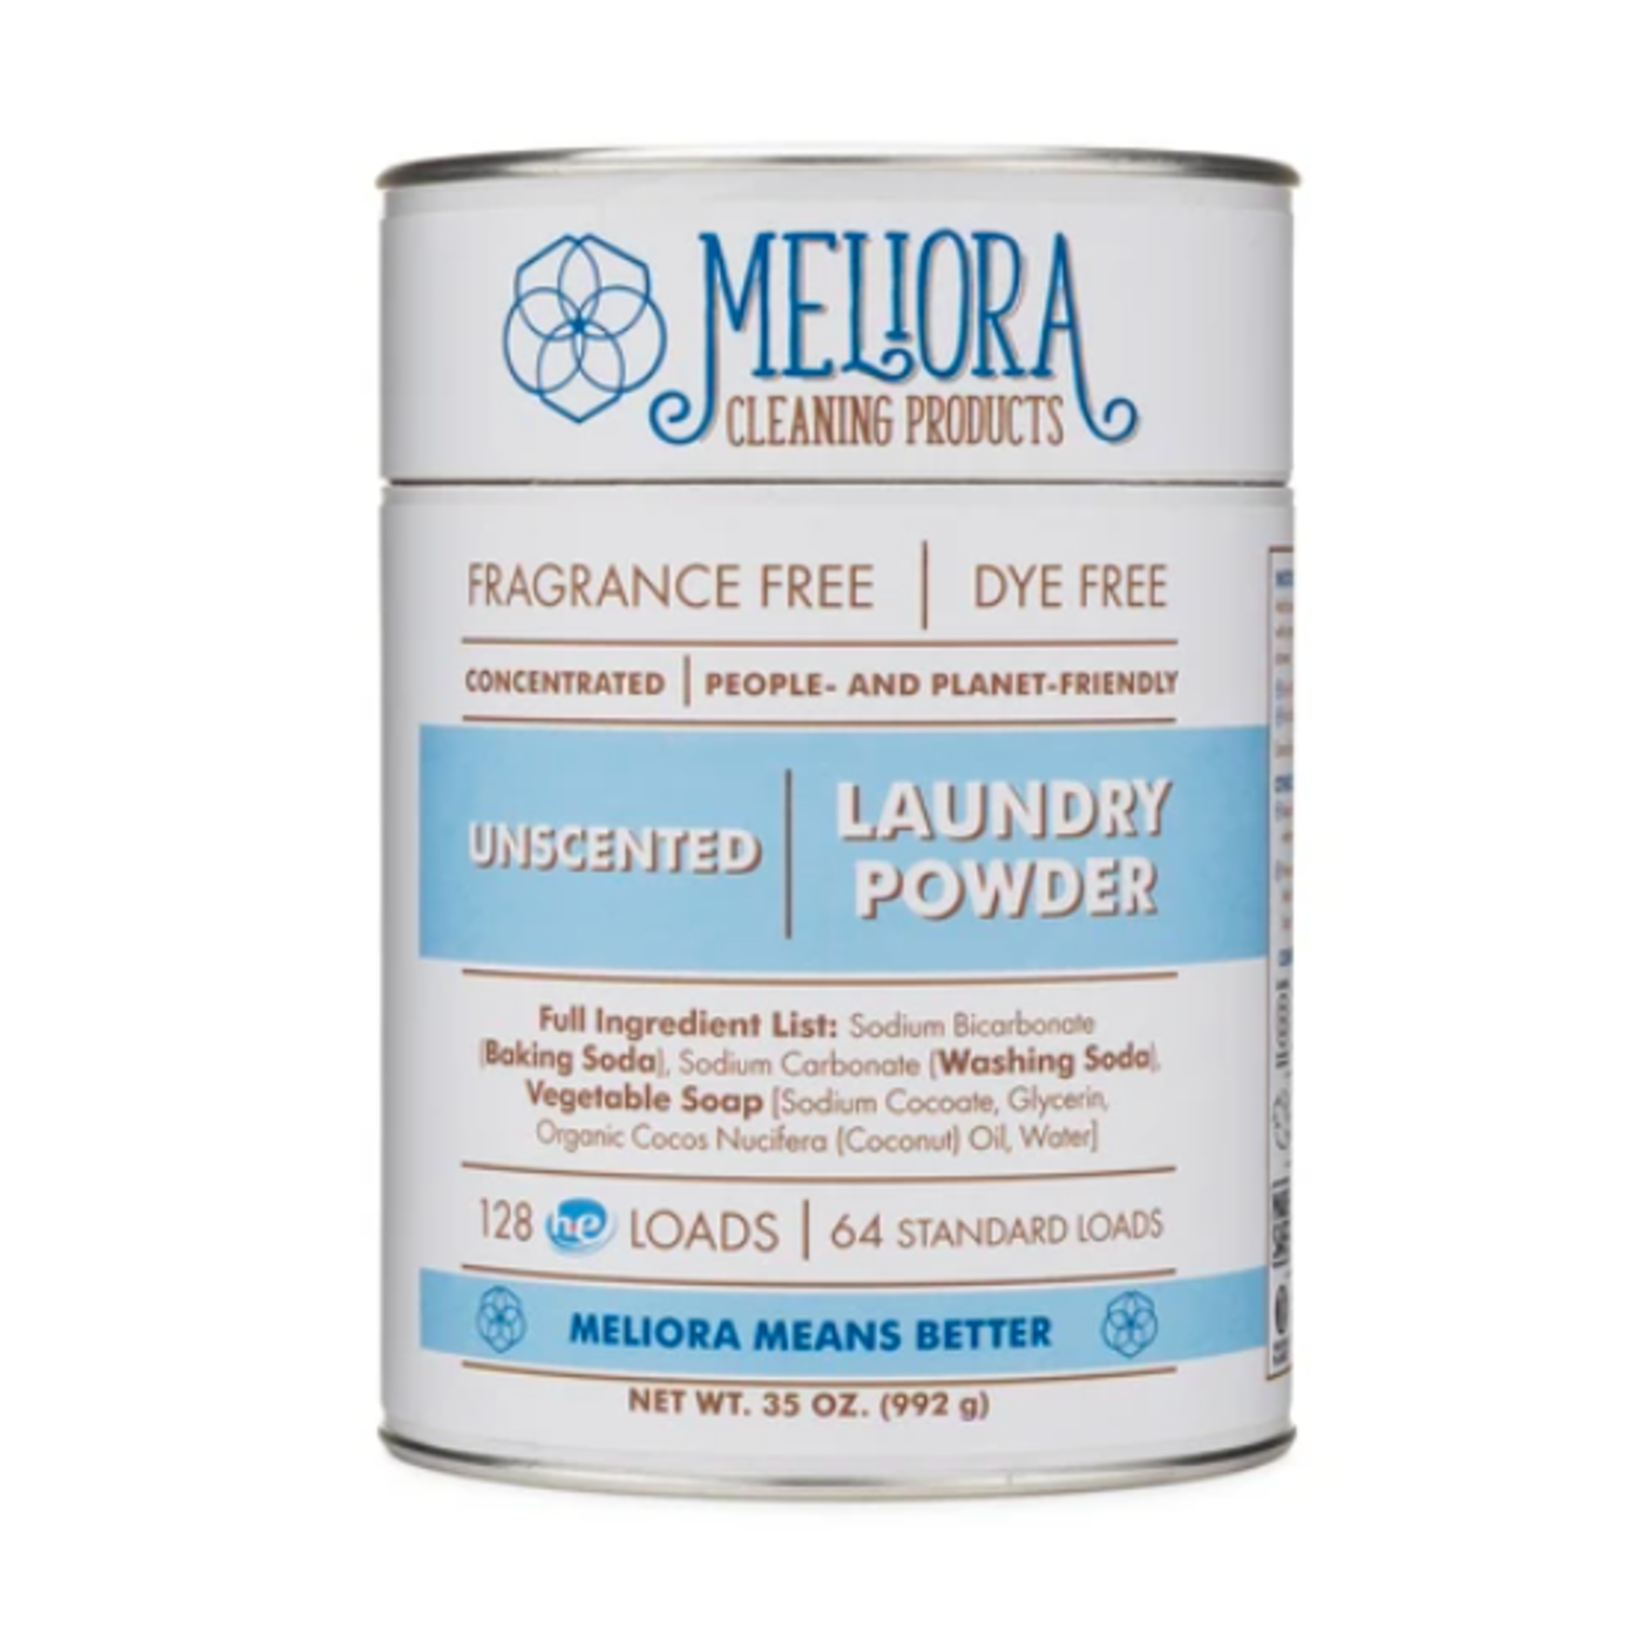 Meliora Cleaning Products Laundry Powder